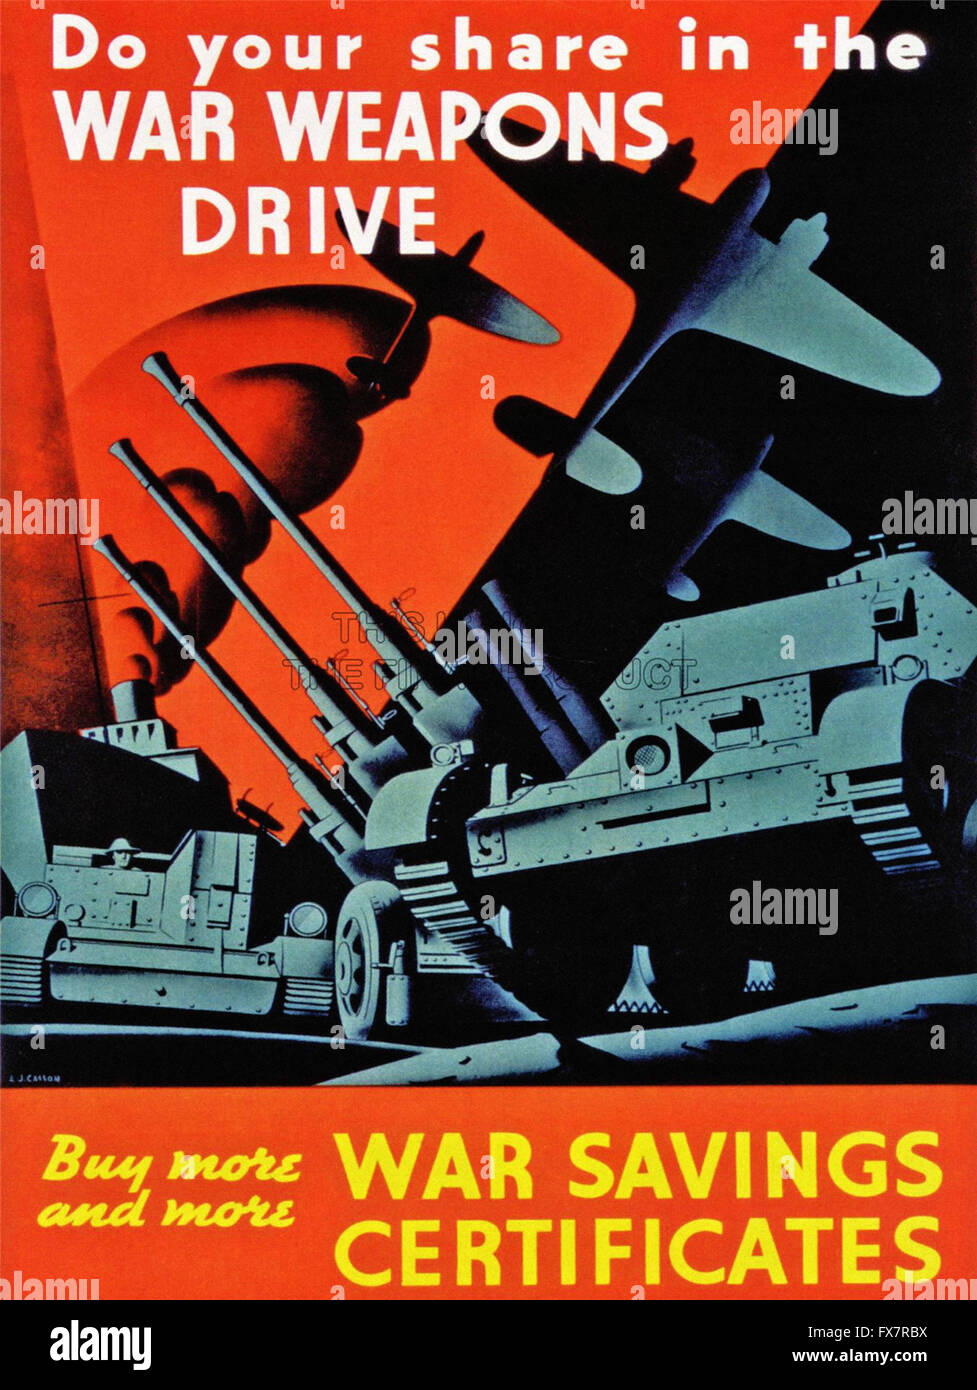 War Weapons Drive - World War II - U.S propaganda Poster - Stock Image